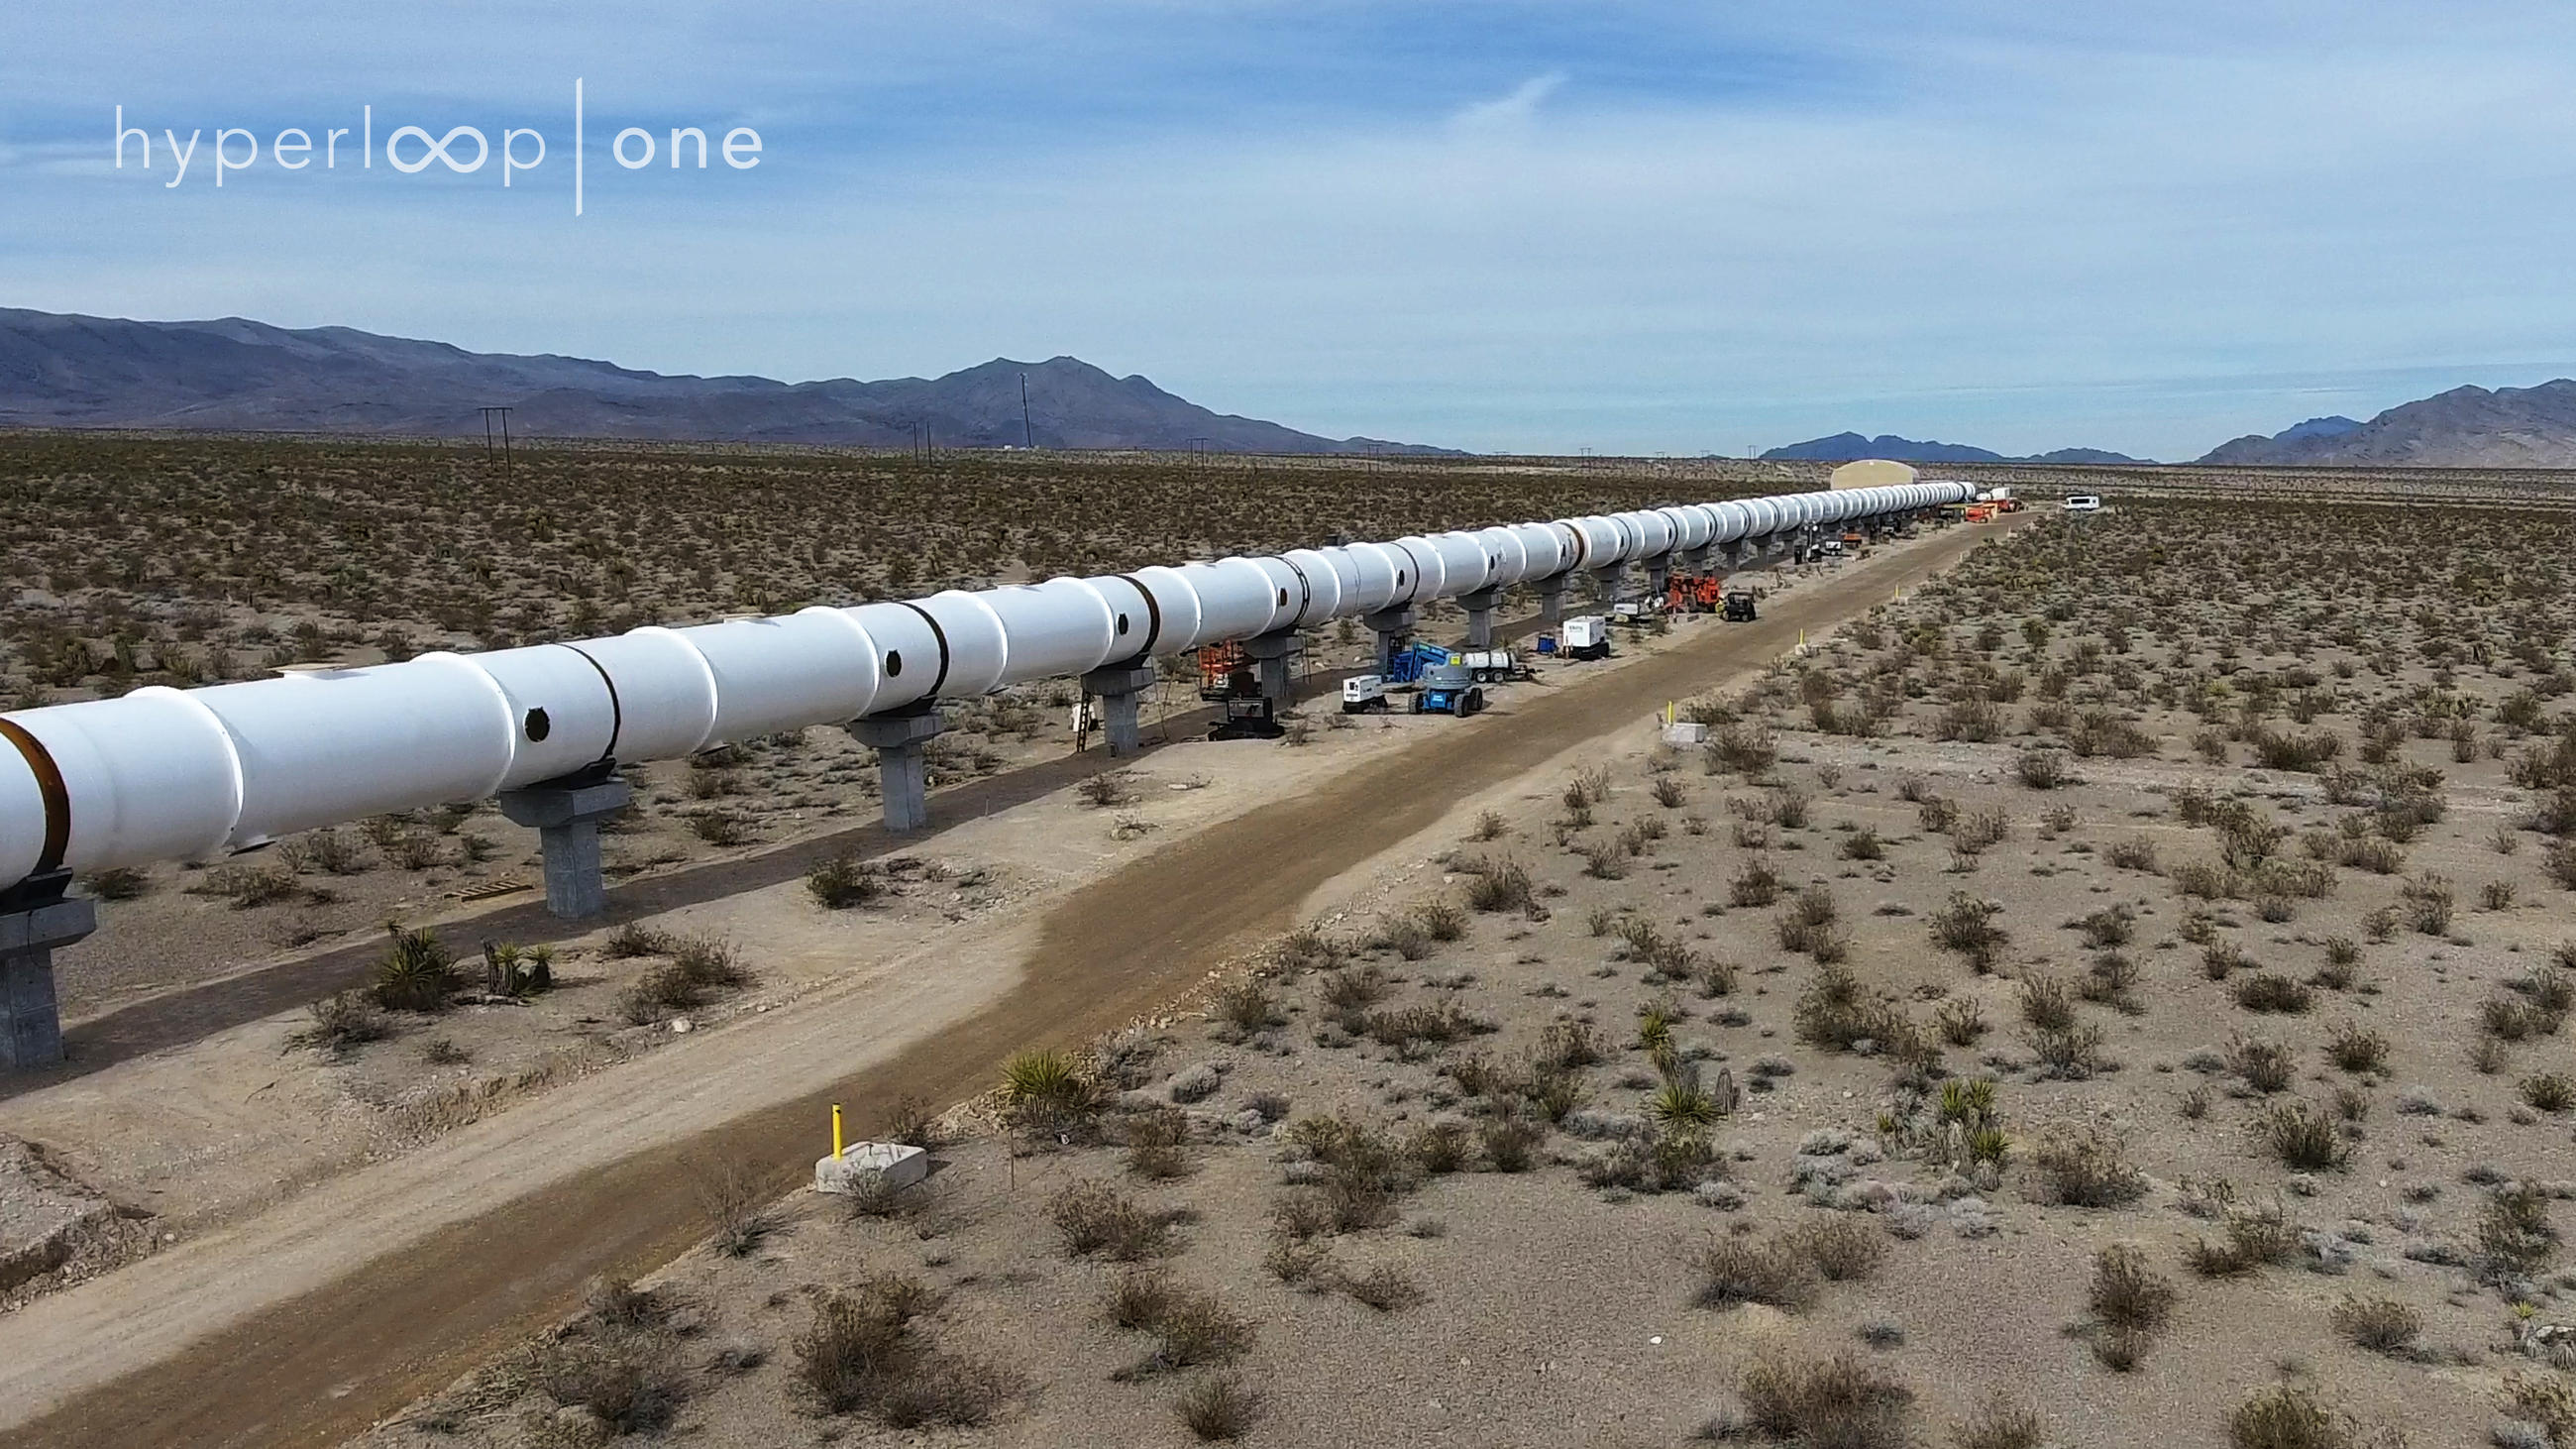 hyperloop-one-test-track-nevada-3